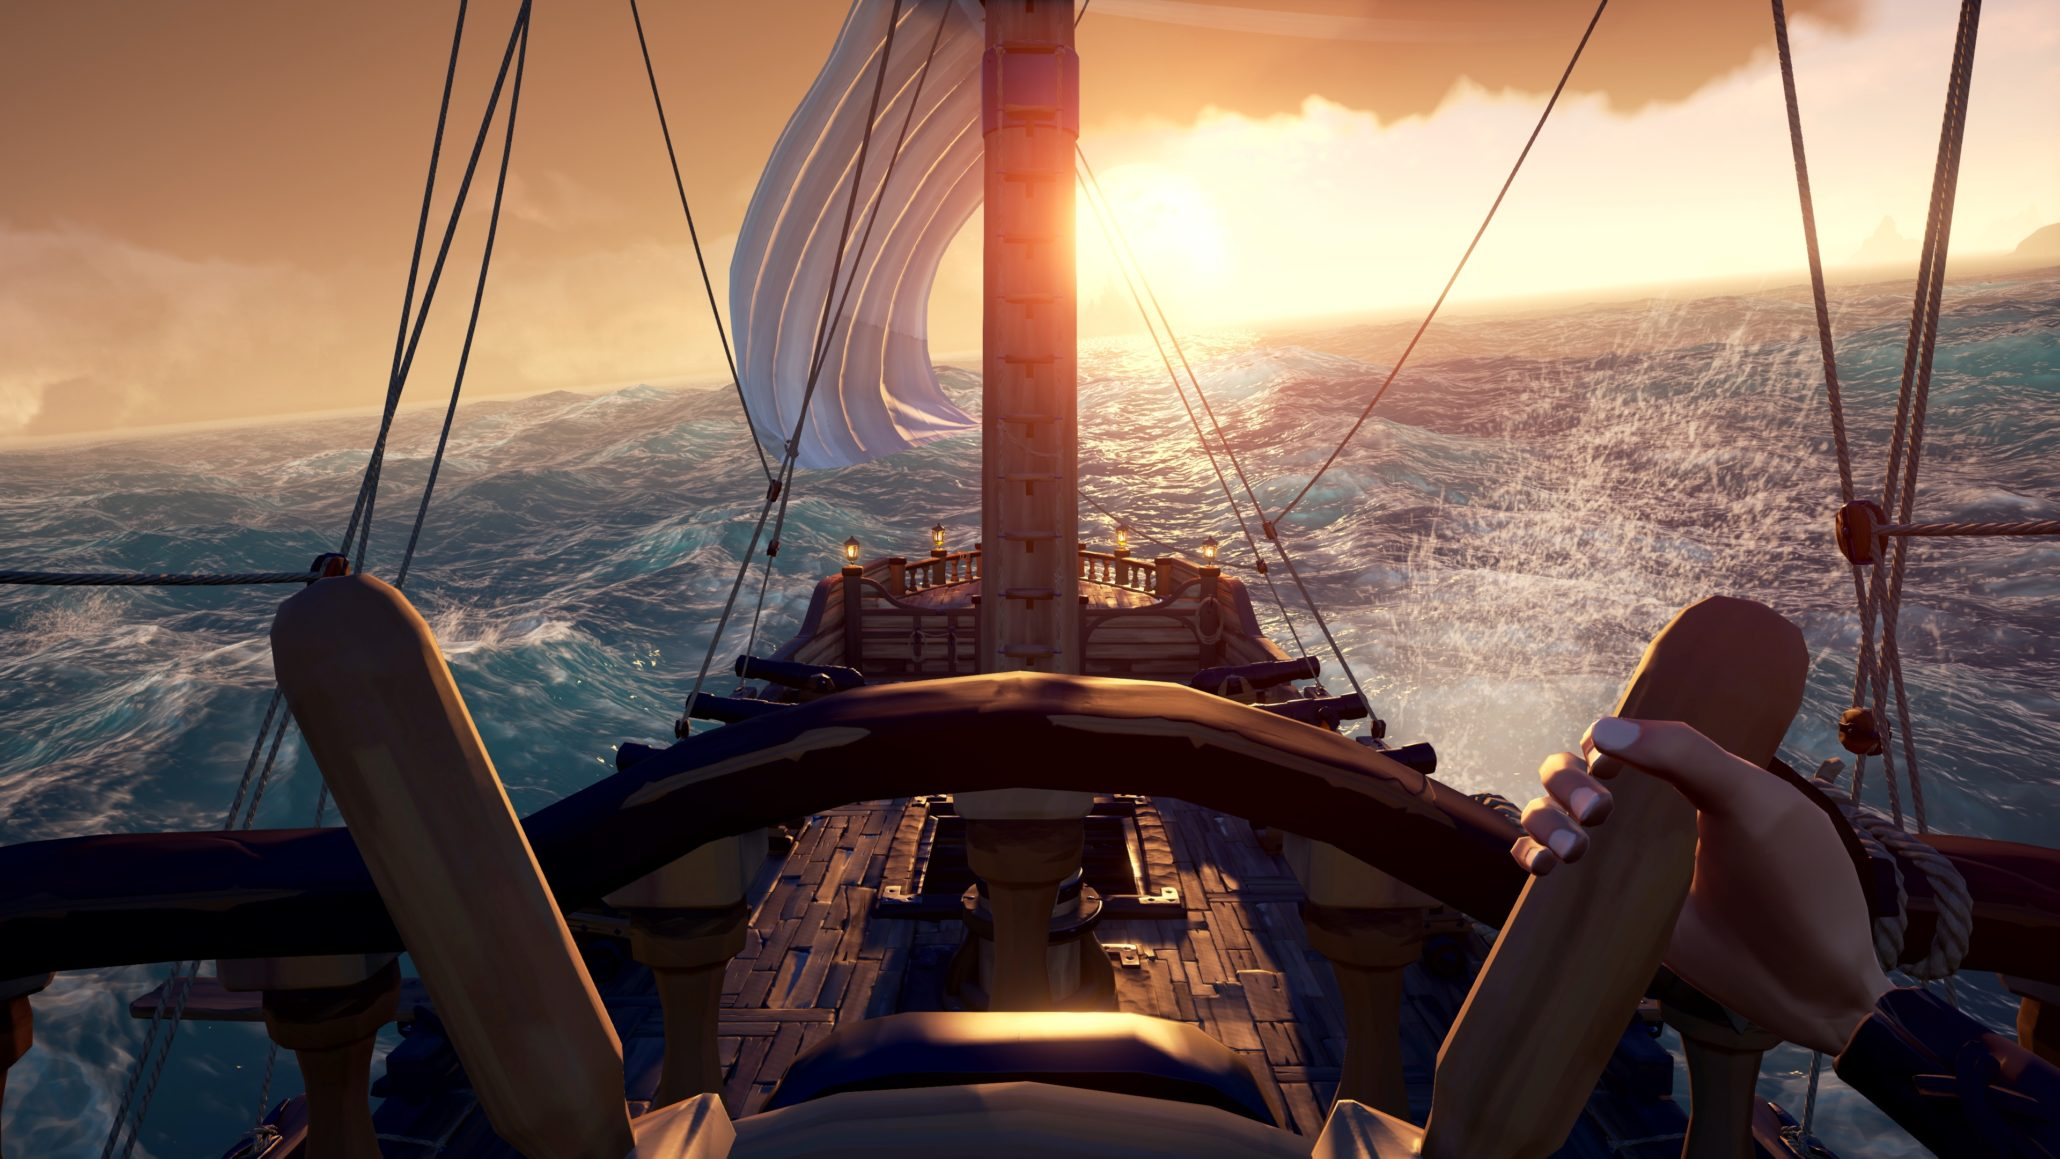 Sea of Thieves update 2.0.5 patch notes add Black Powder Stashes